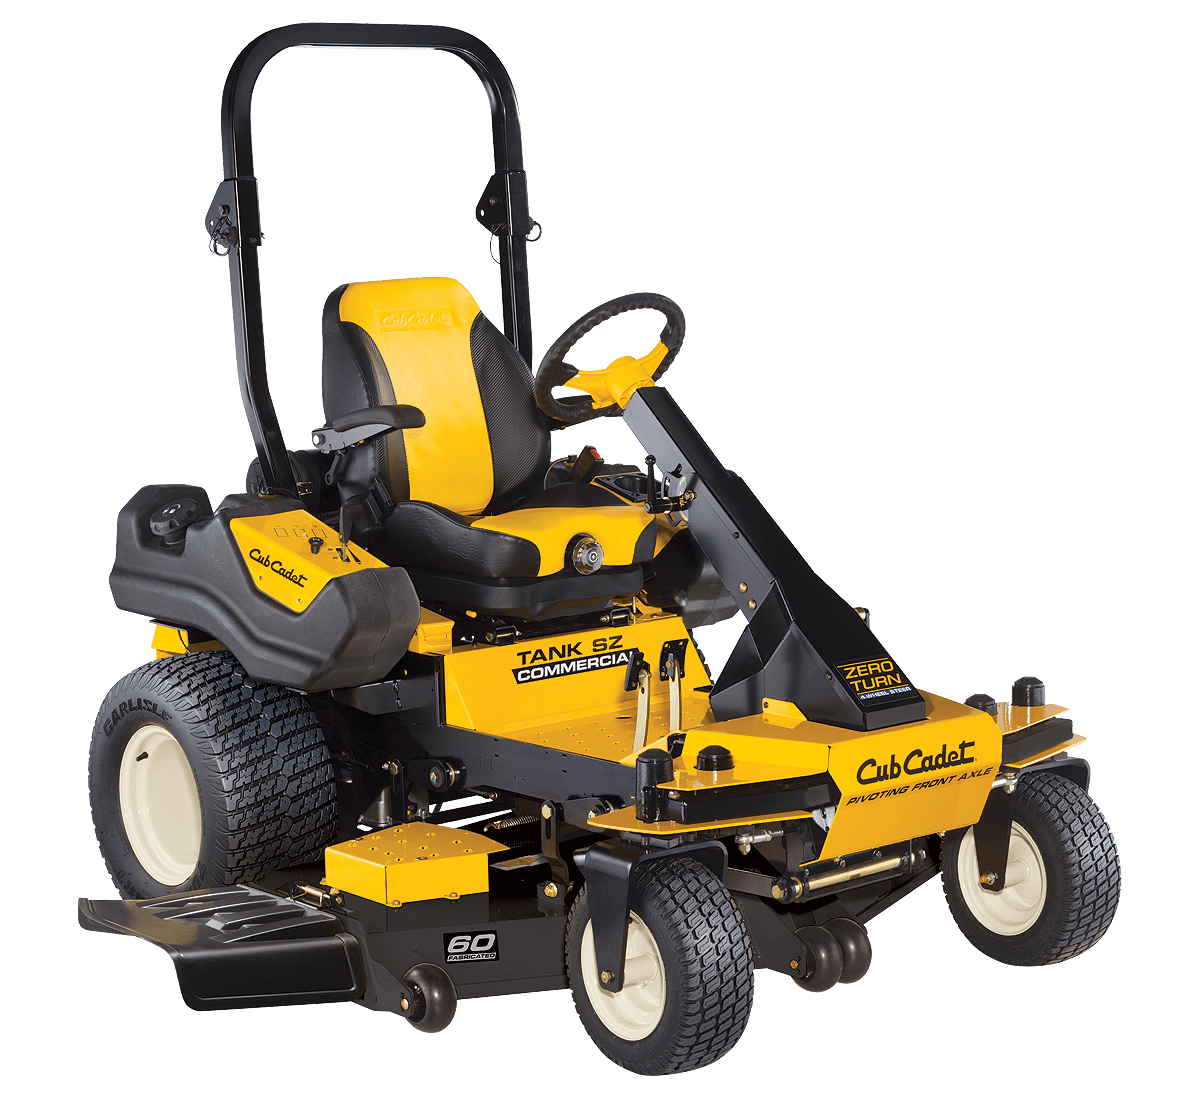 2017 Cub Cadet Tank SZ 60 KW in Sturgeon Bay, Wisconsin